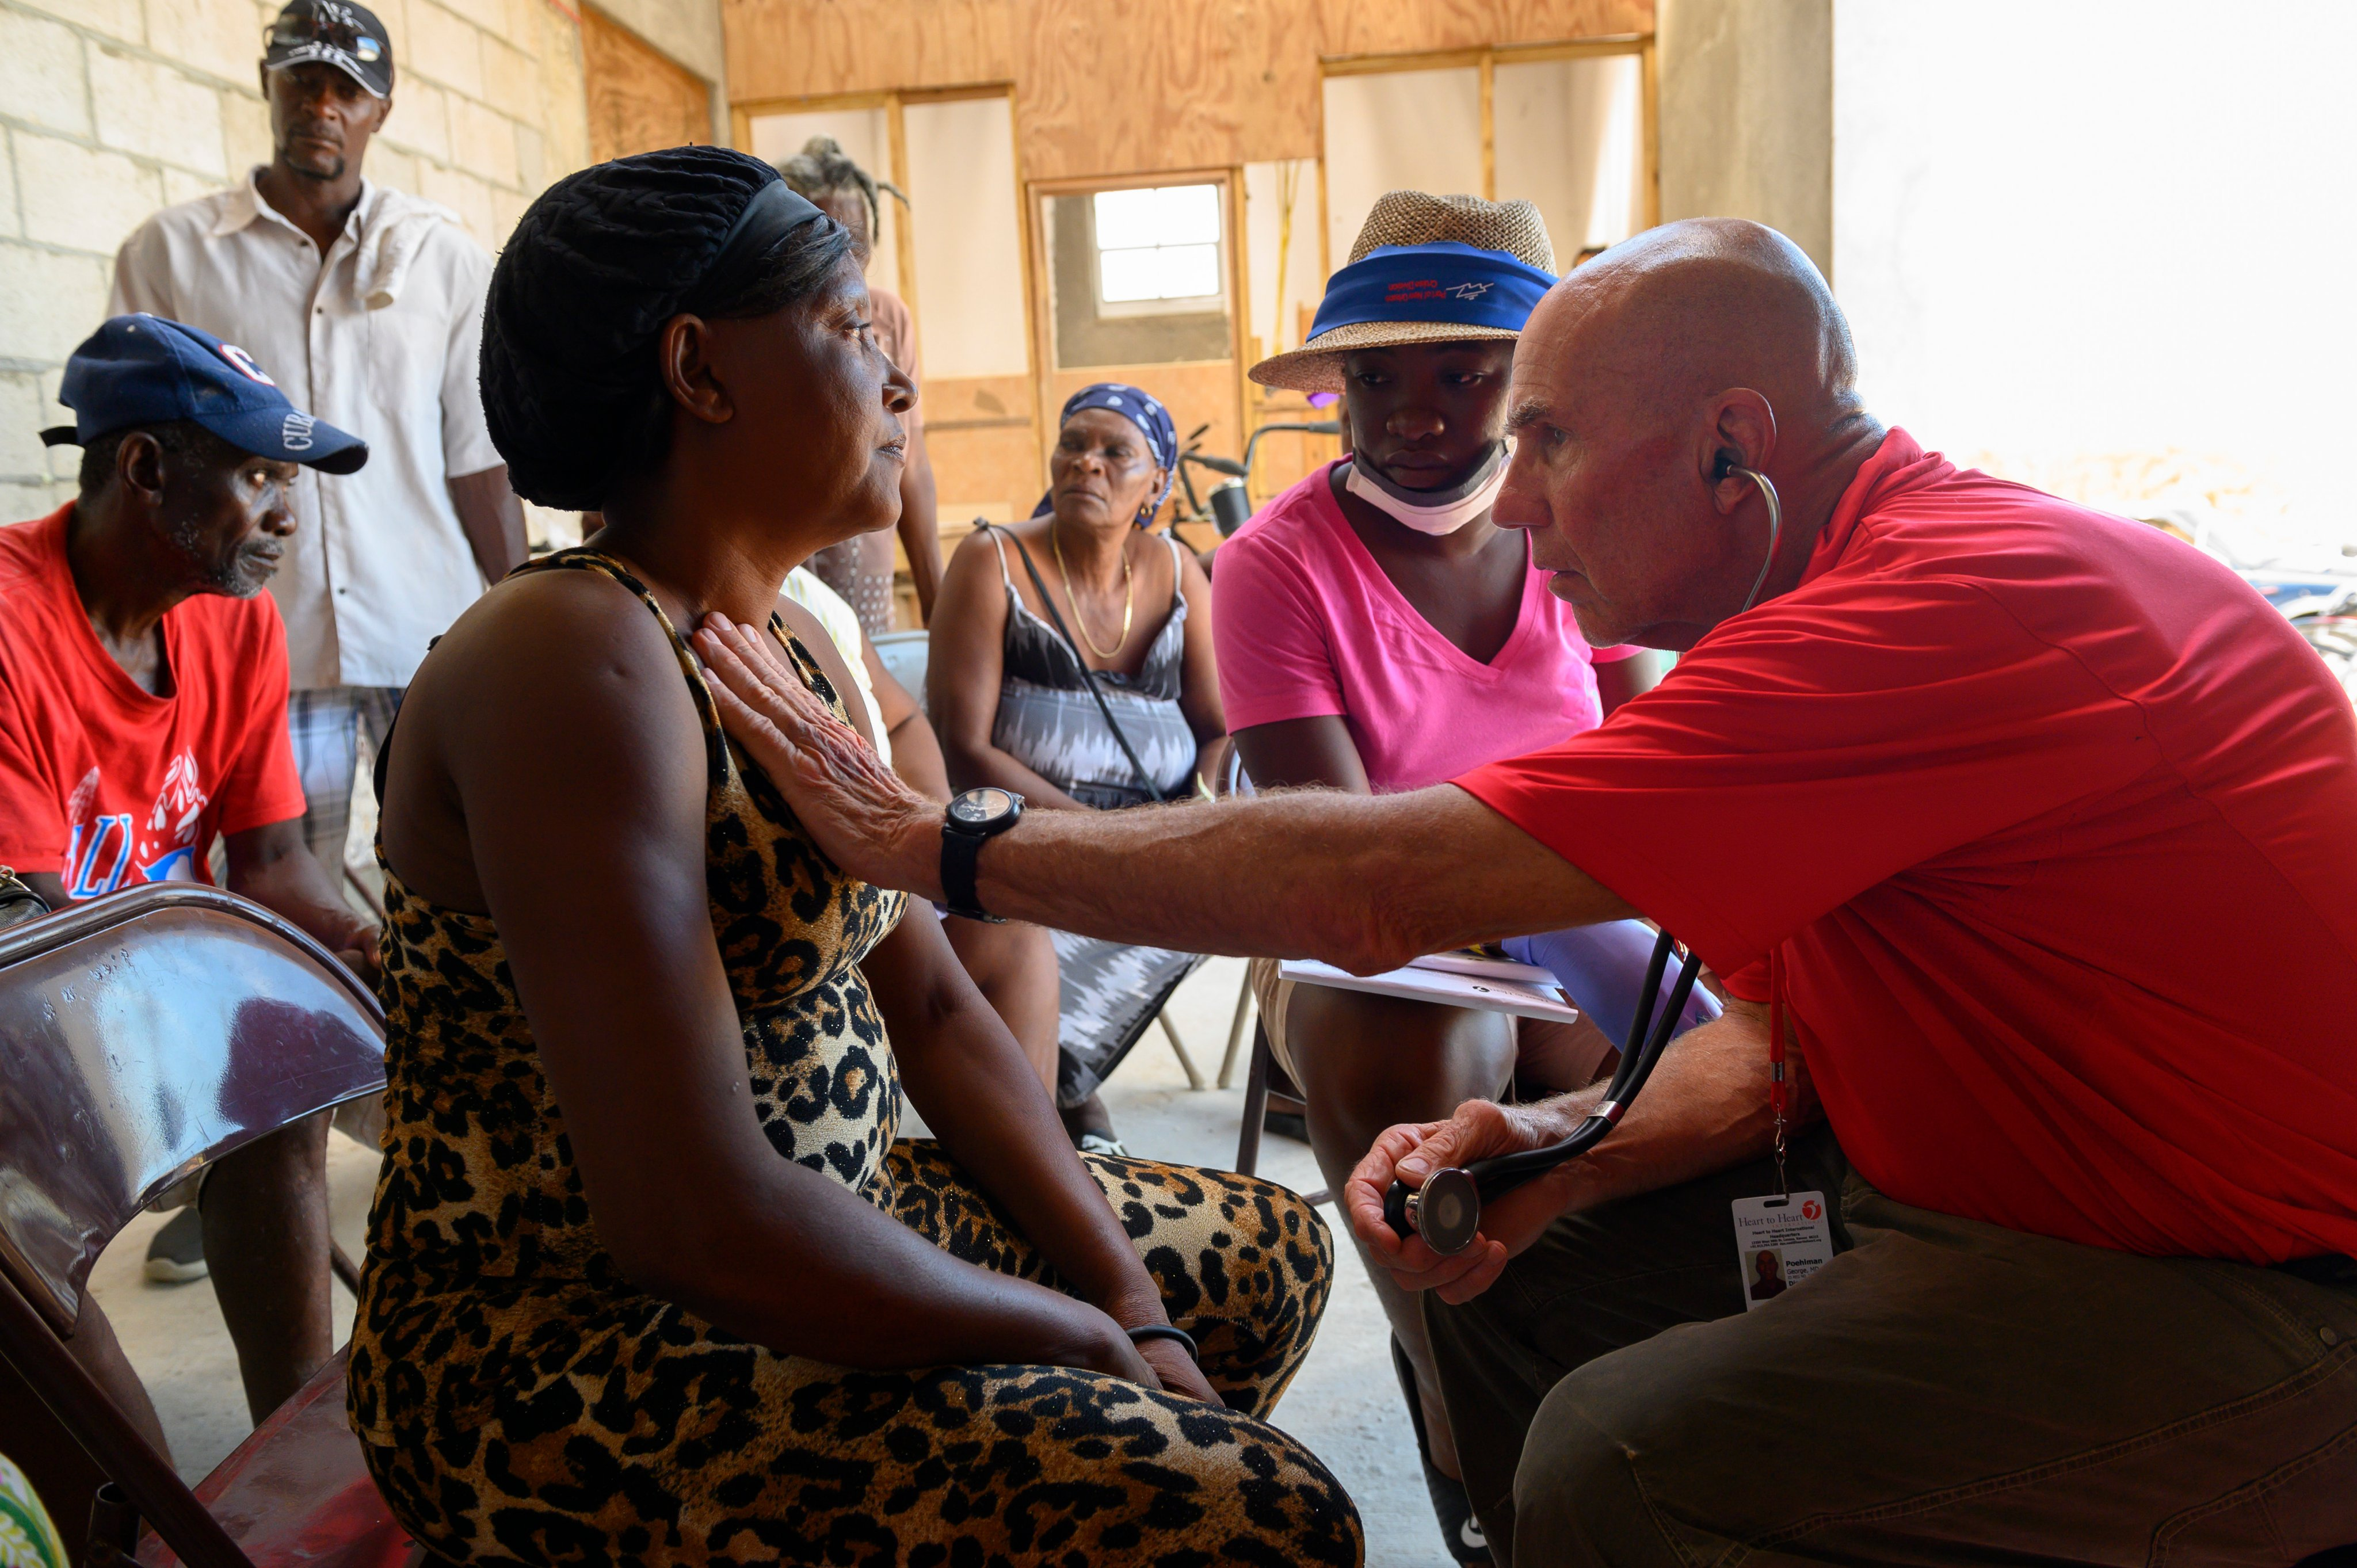 Dr. George Poehlman with Heart to Heart International sees patients at a clinic in the Bahamas set up after Hurricane Dorian  hit the islands.